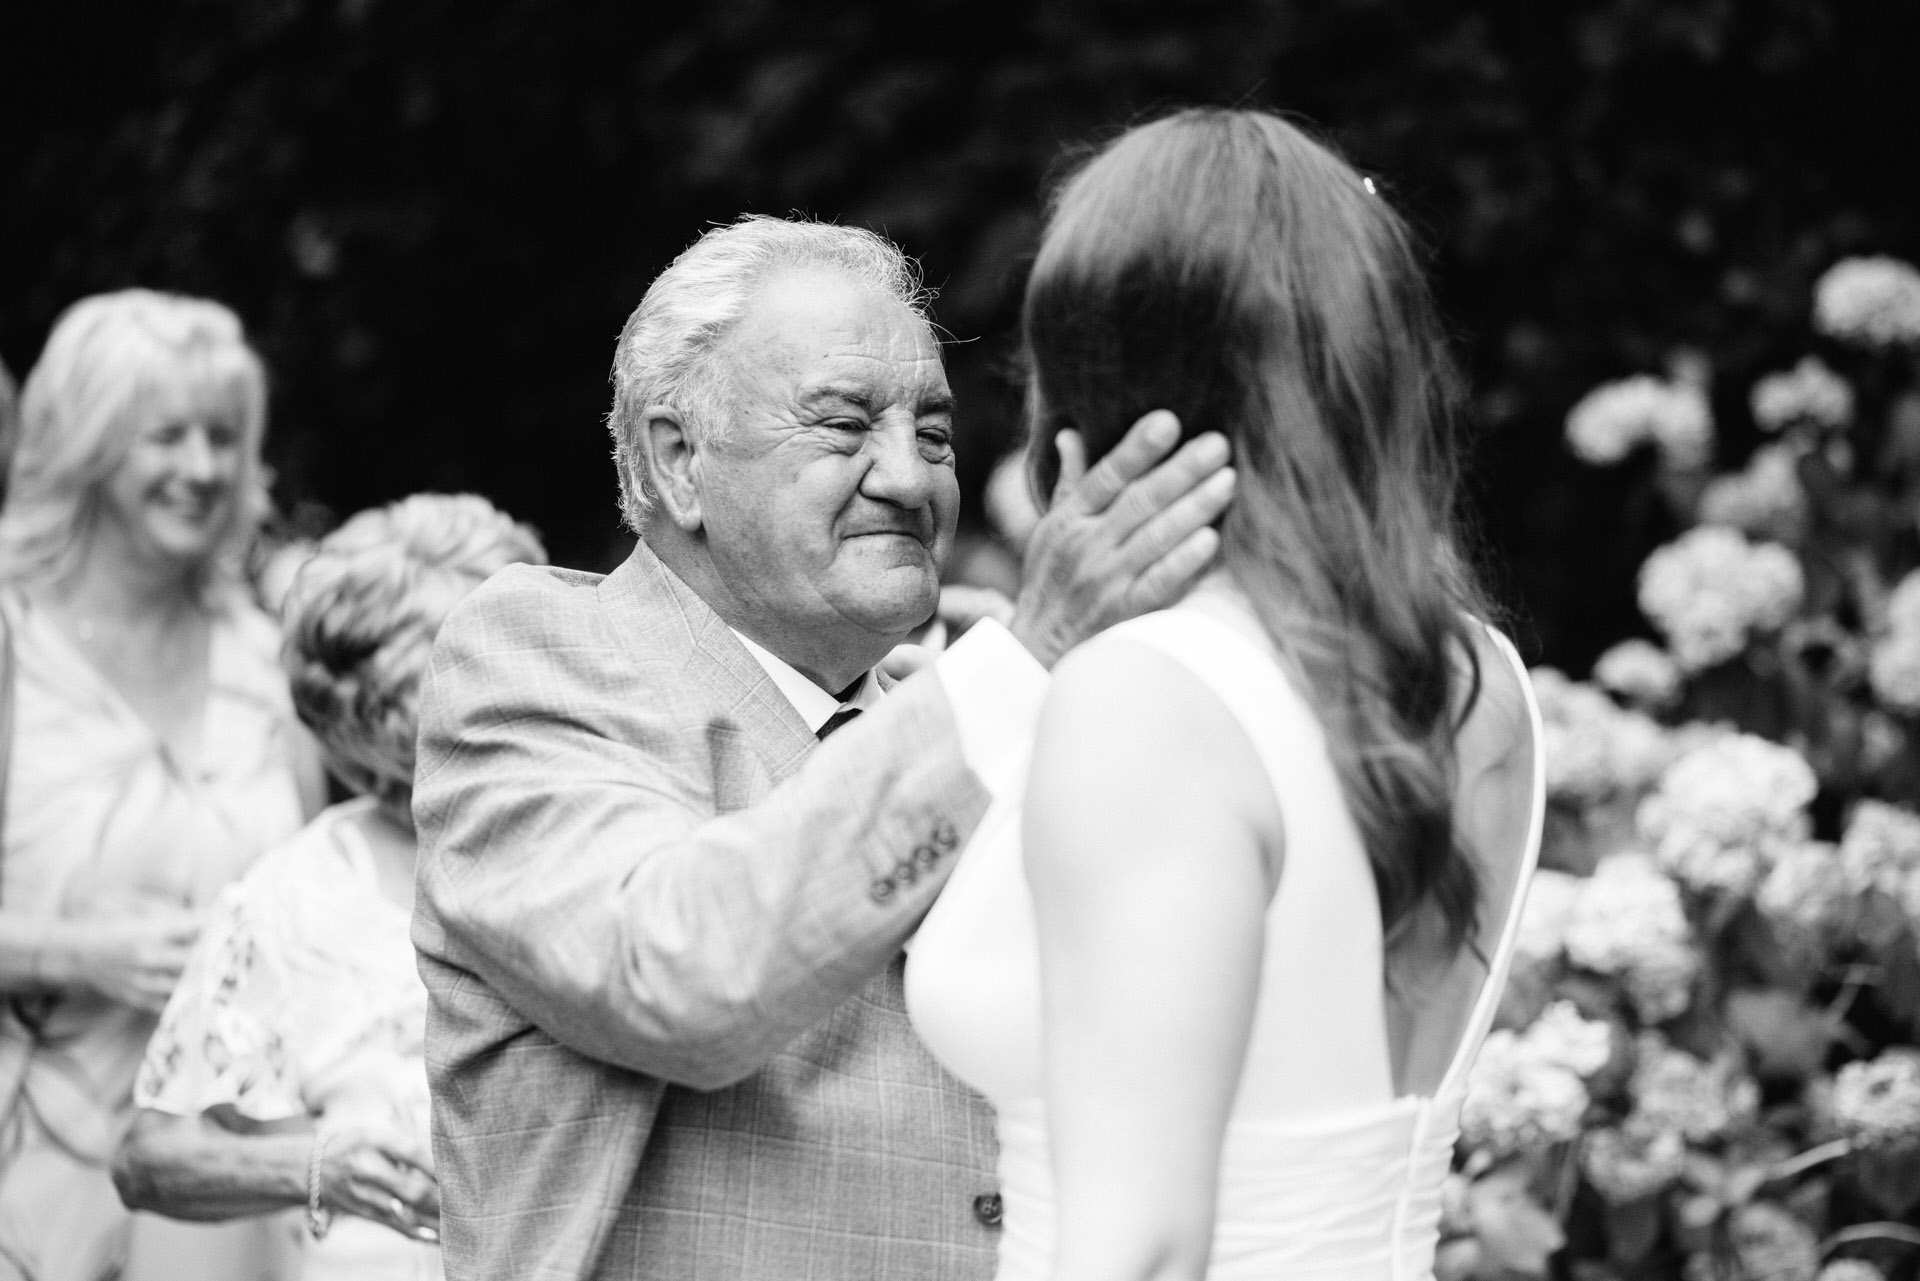 grandad and granddaughter on wedding day